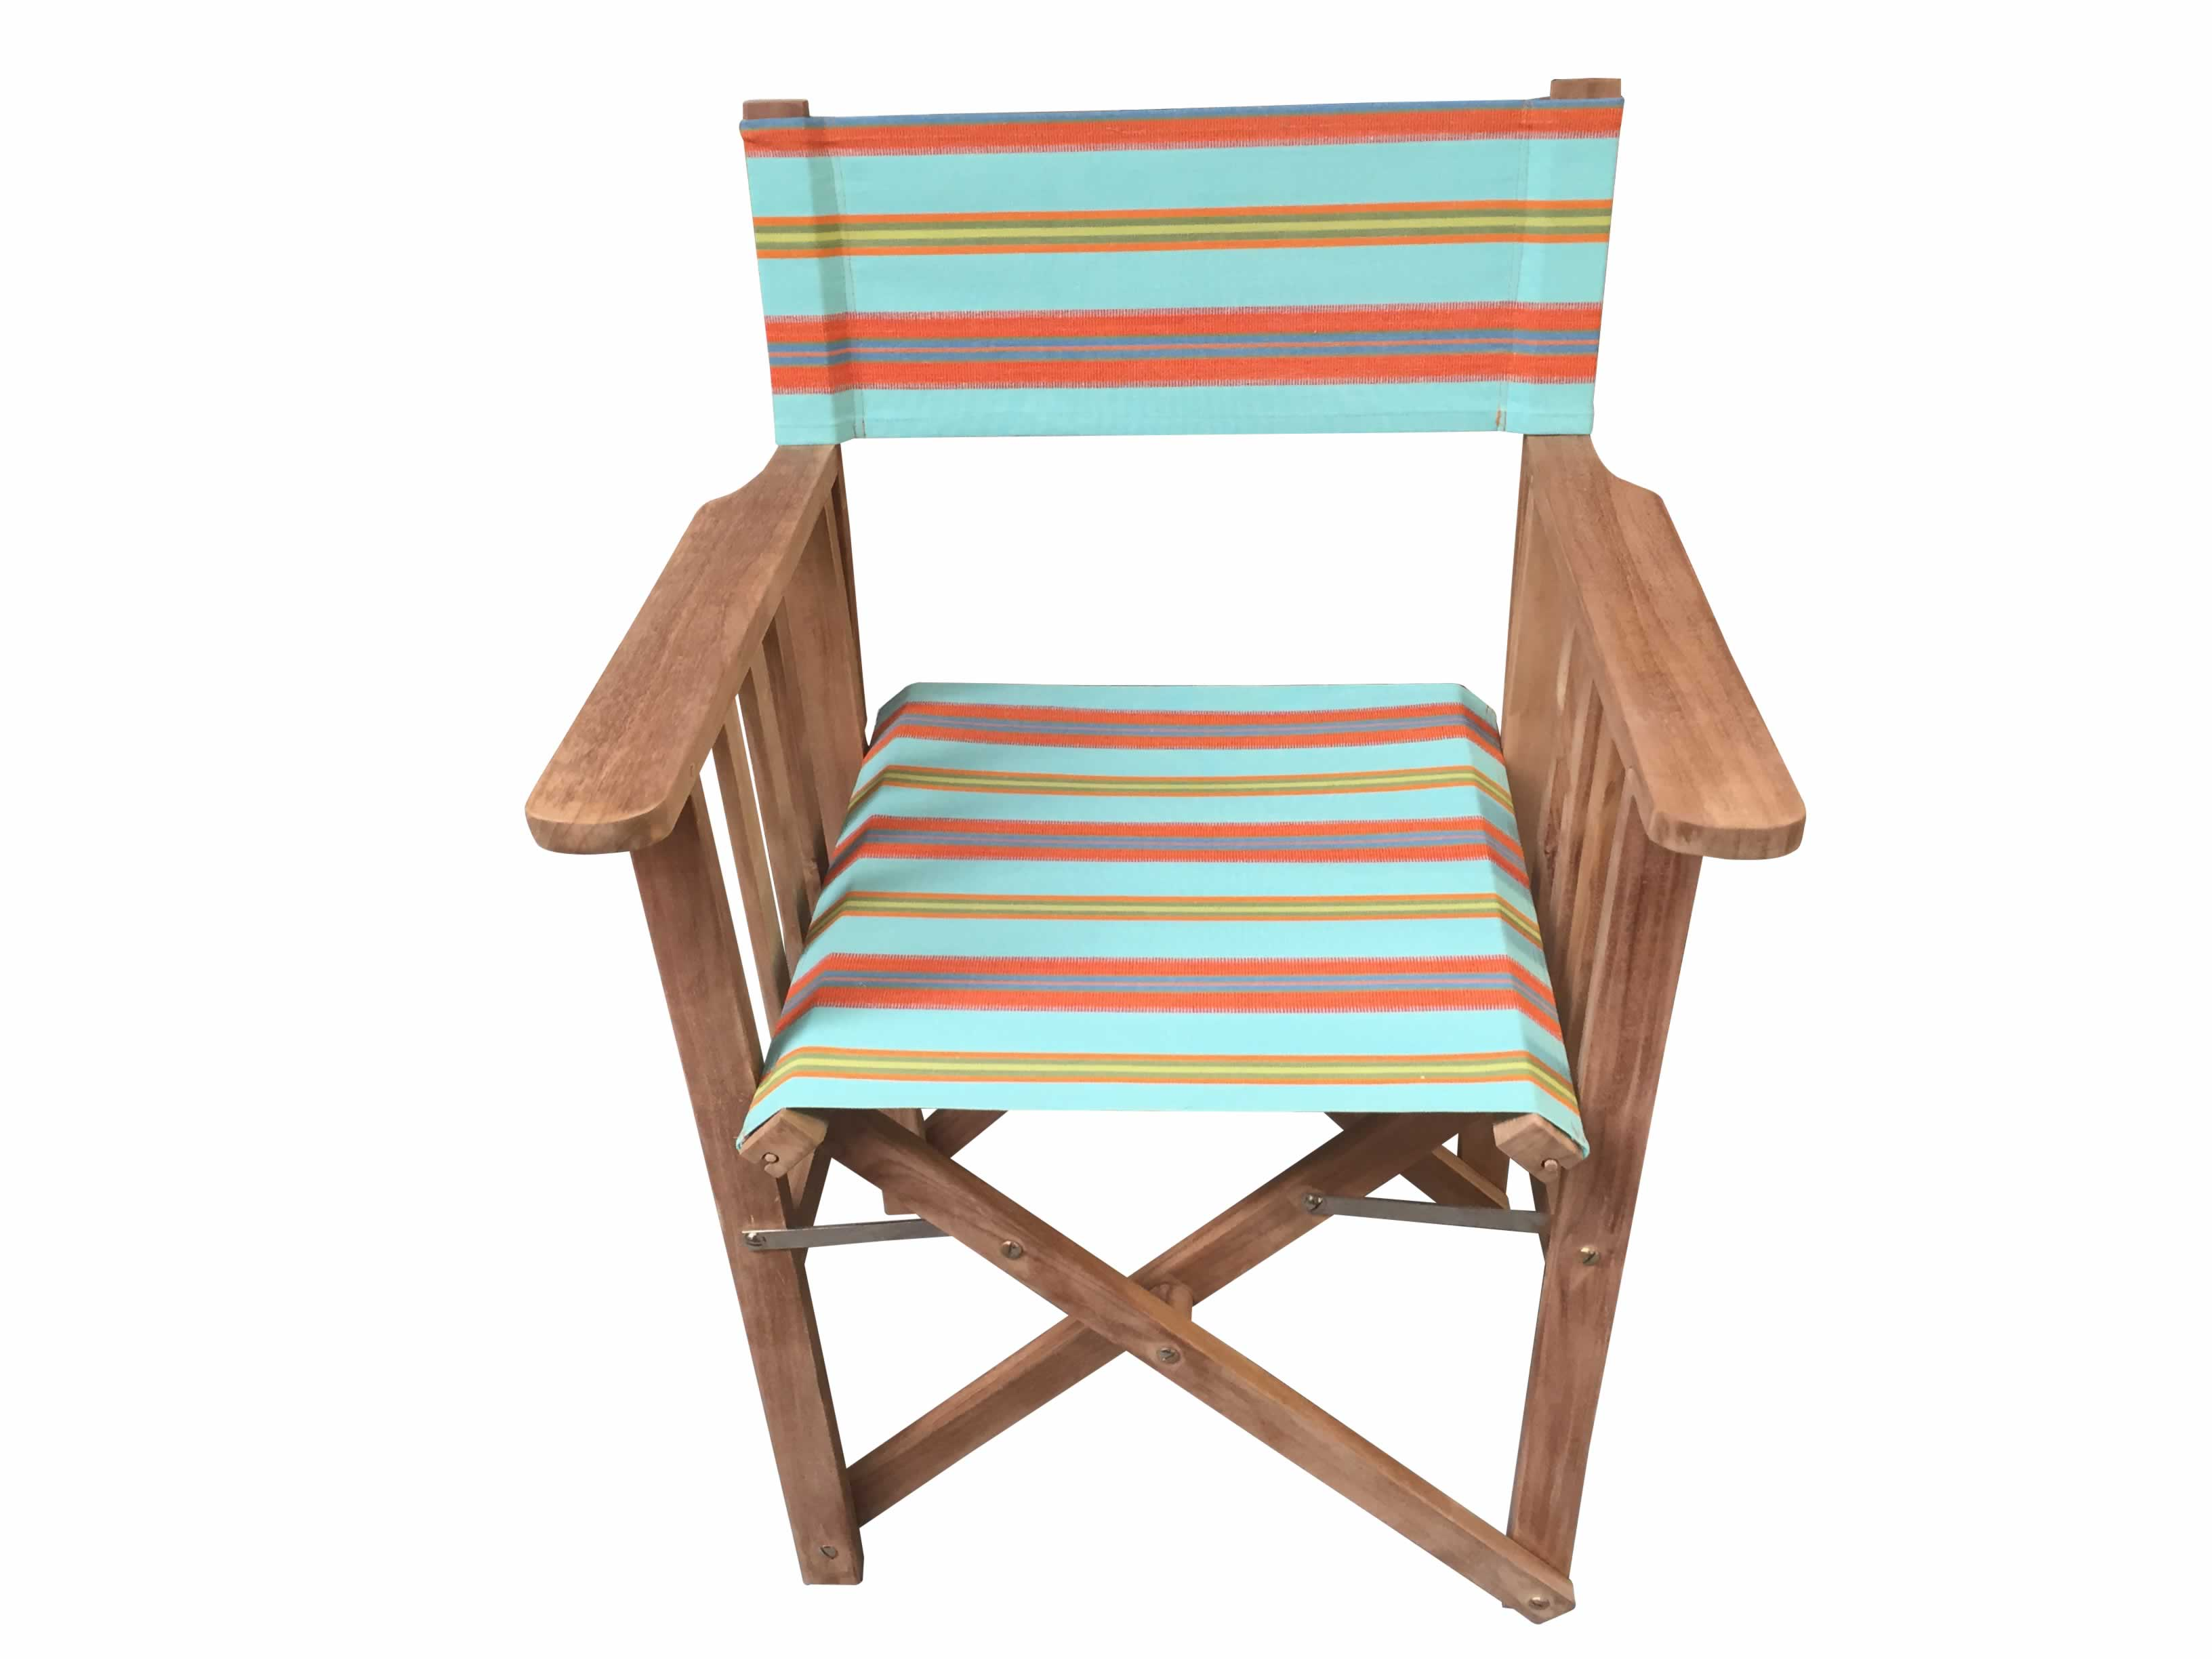 turquoise, terracotta, blue - Directors Chairs